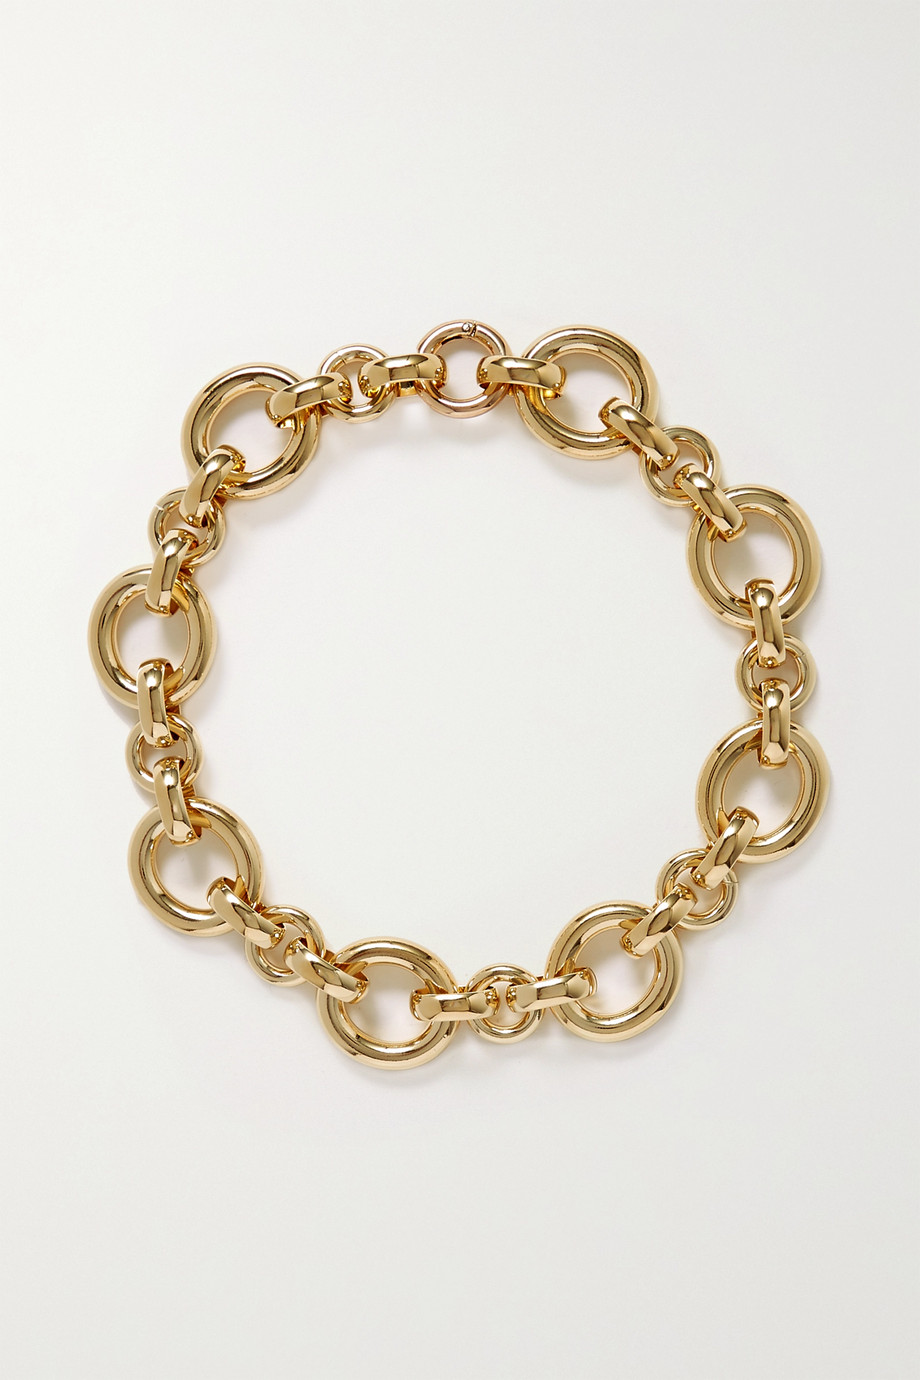 Laura Lombardi Calle gold-plated necklace